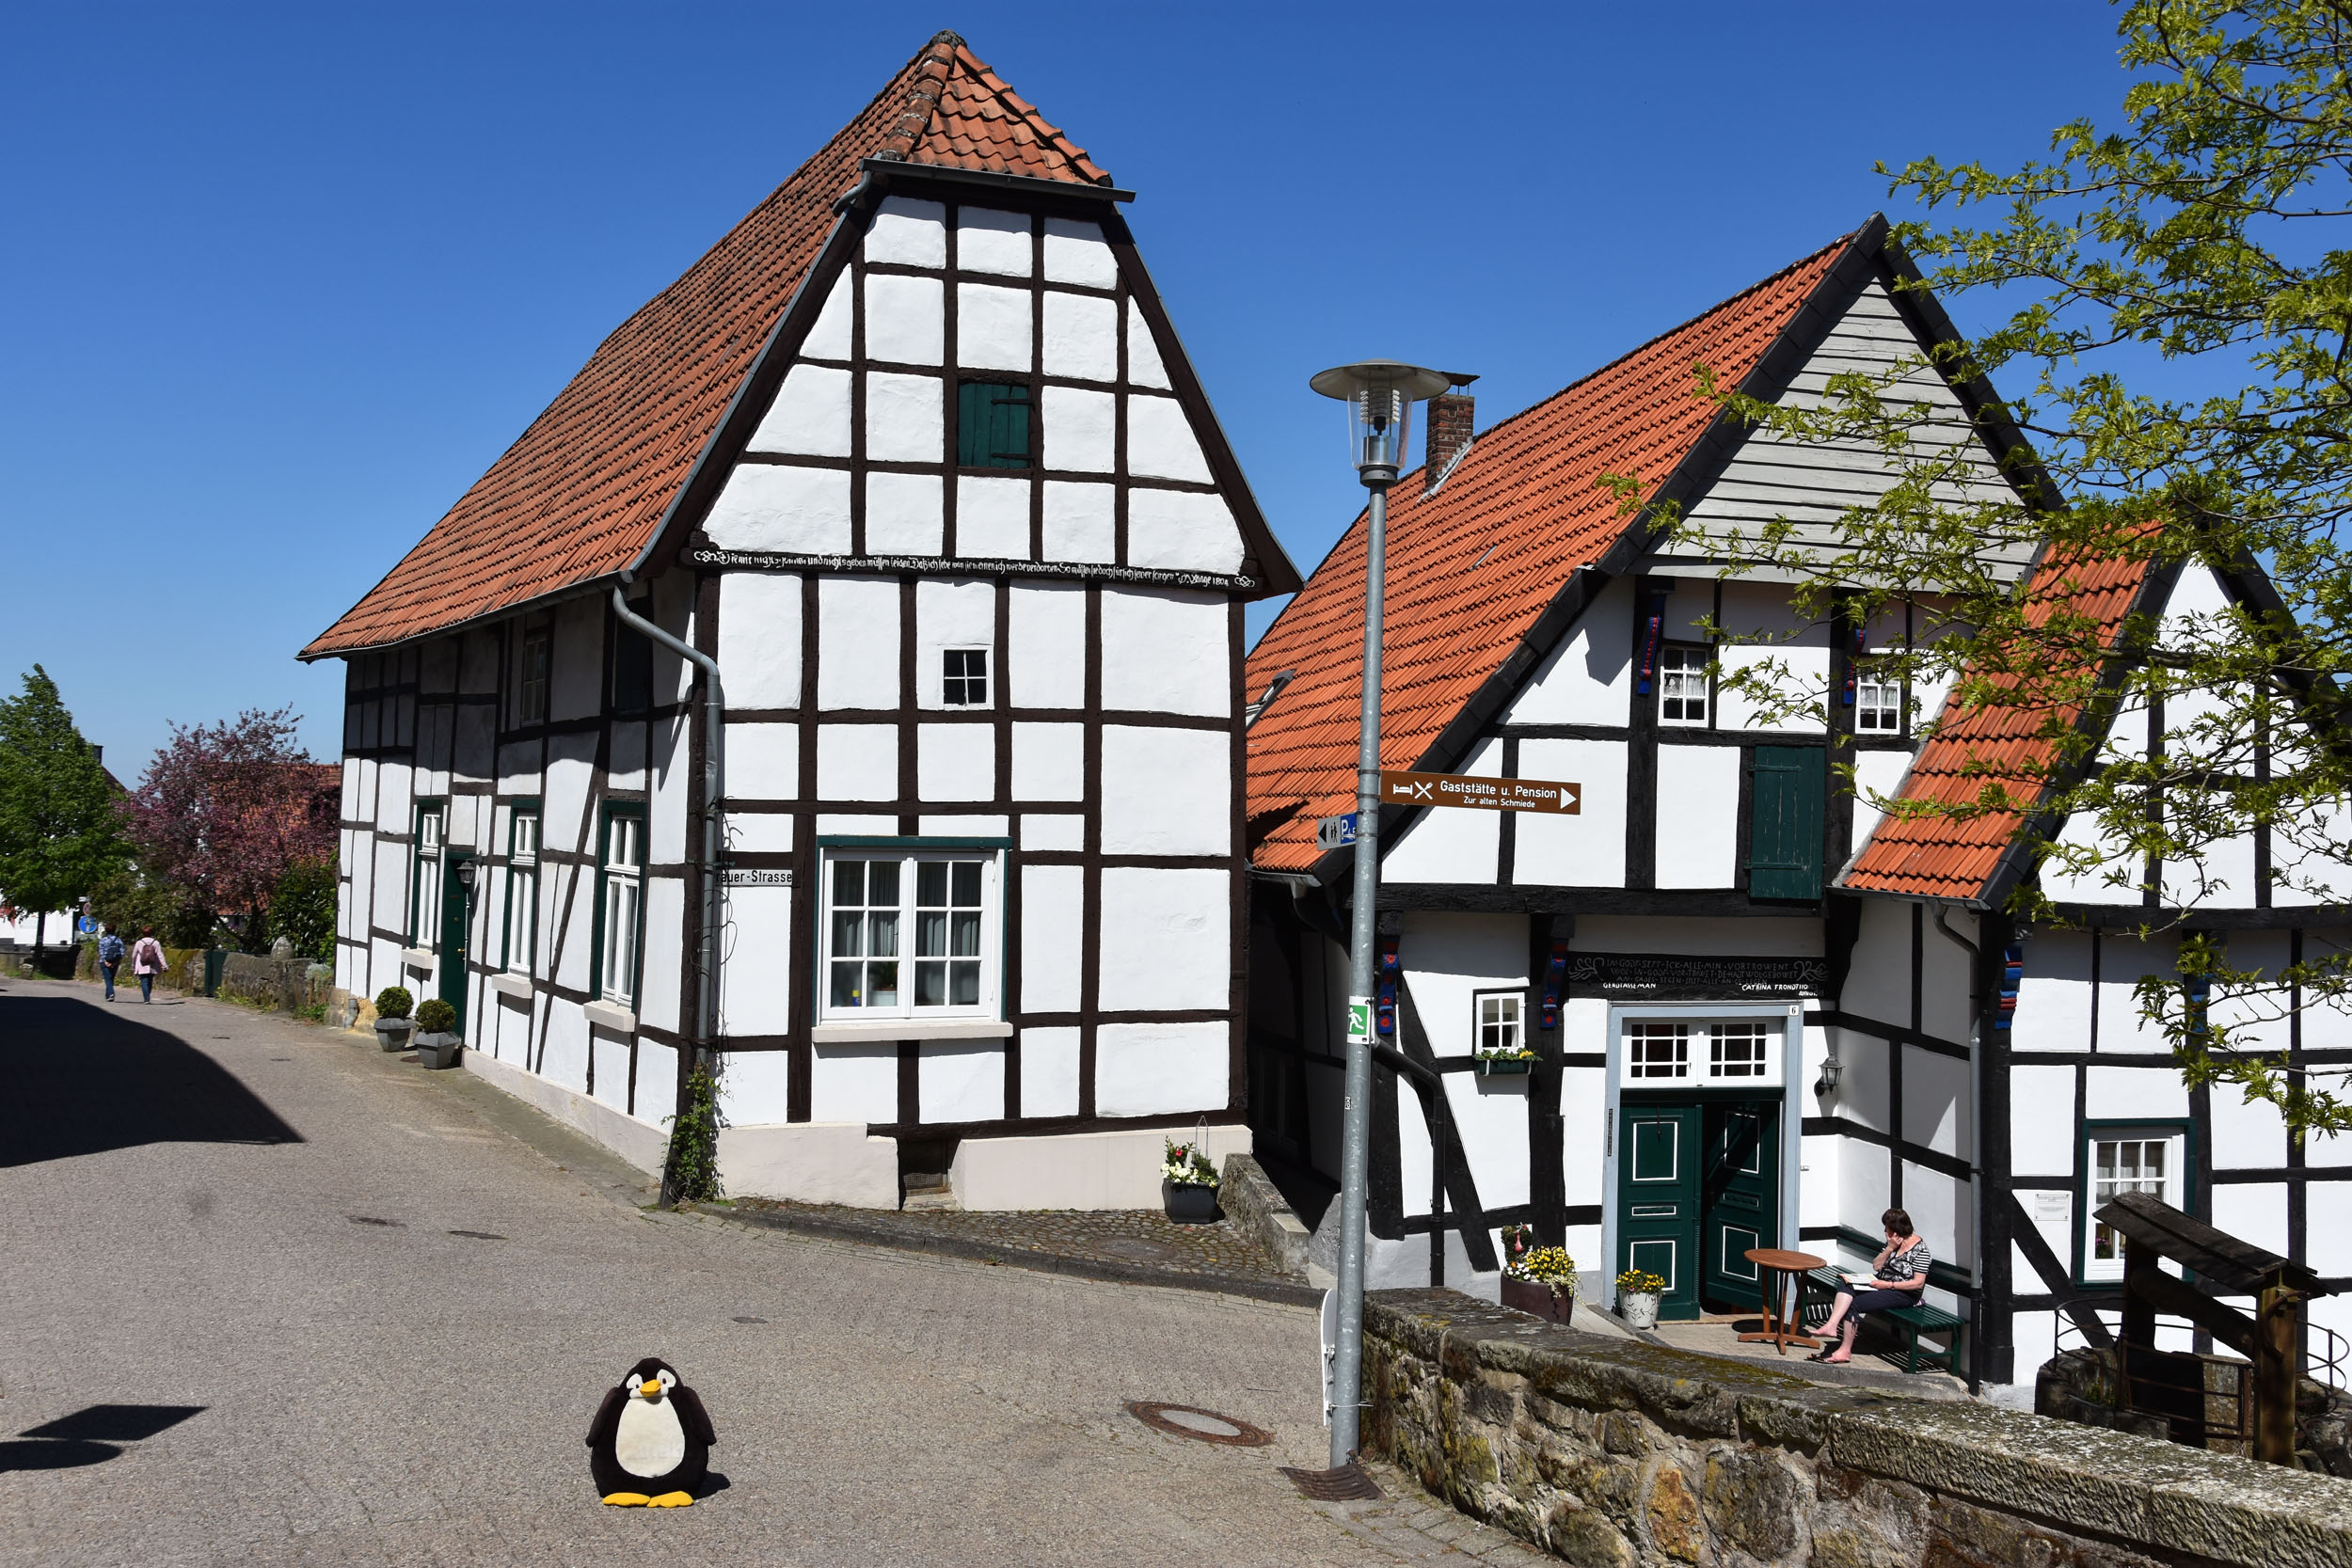 Pingu in Tecklenburg